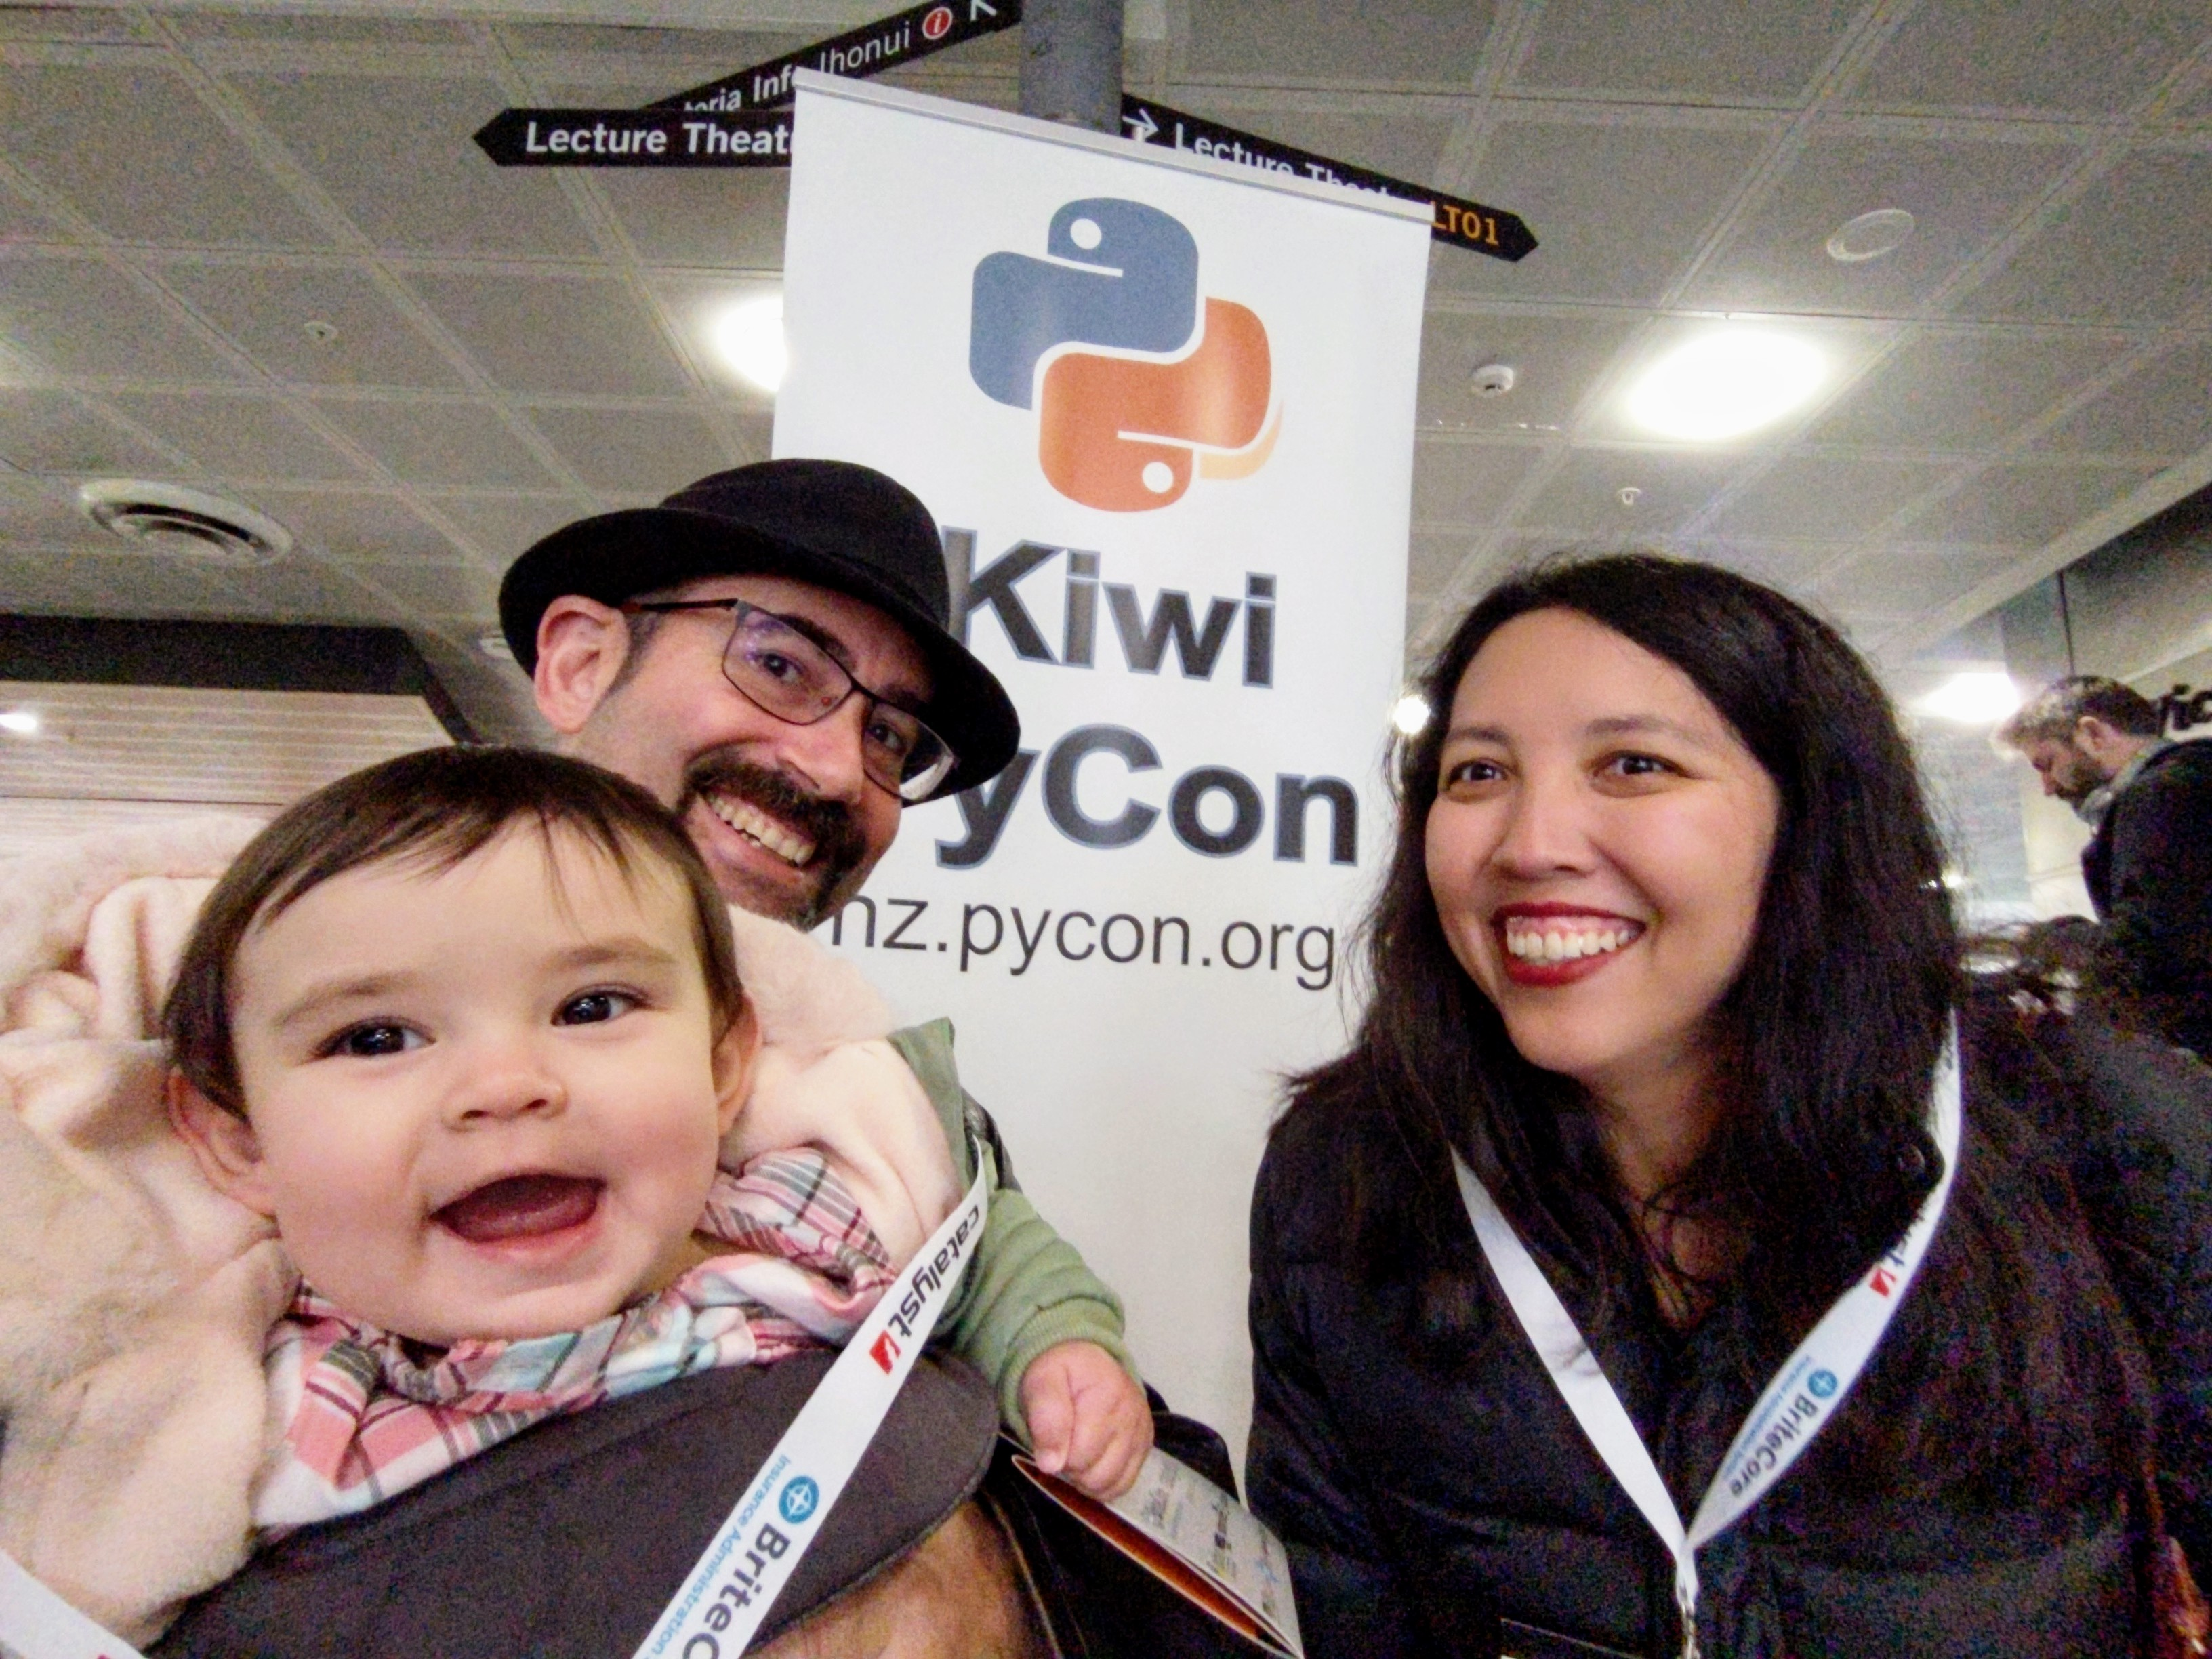 Kiwi PyCon family photo!